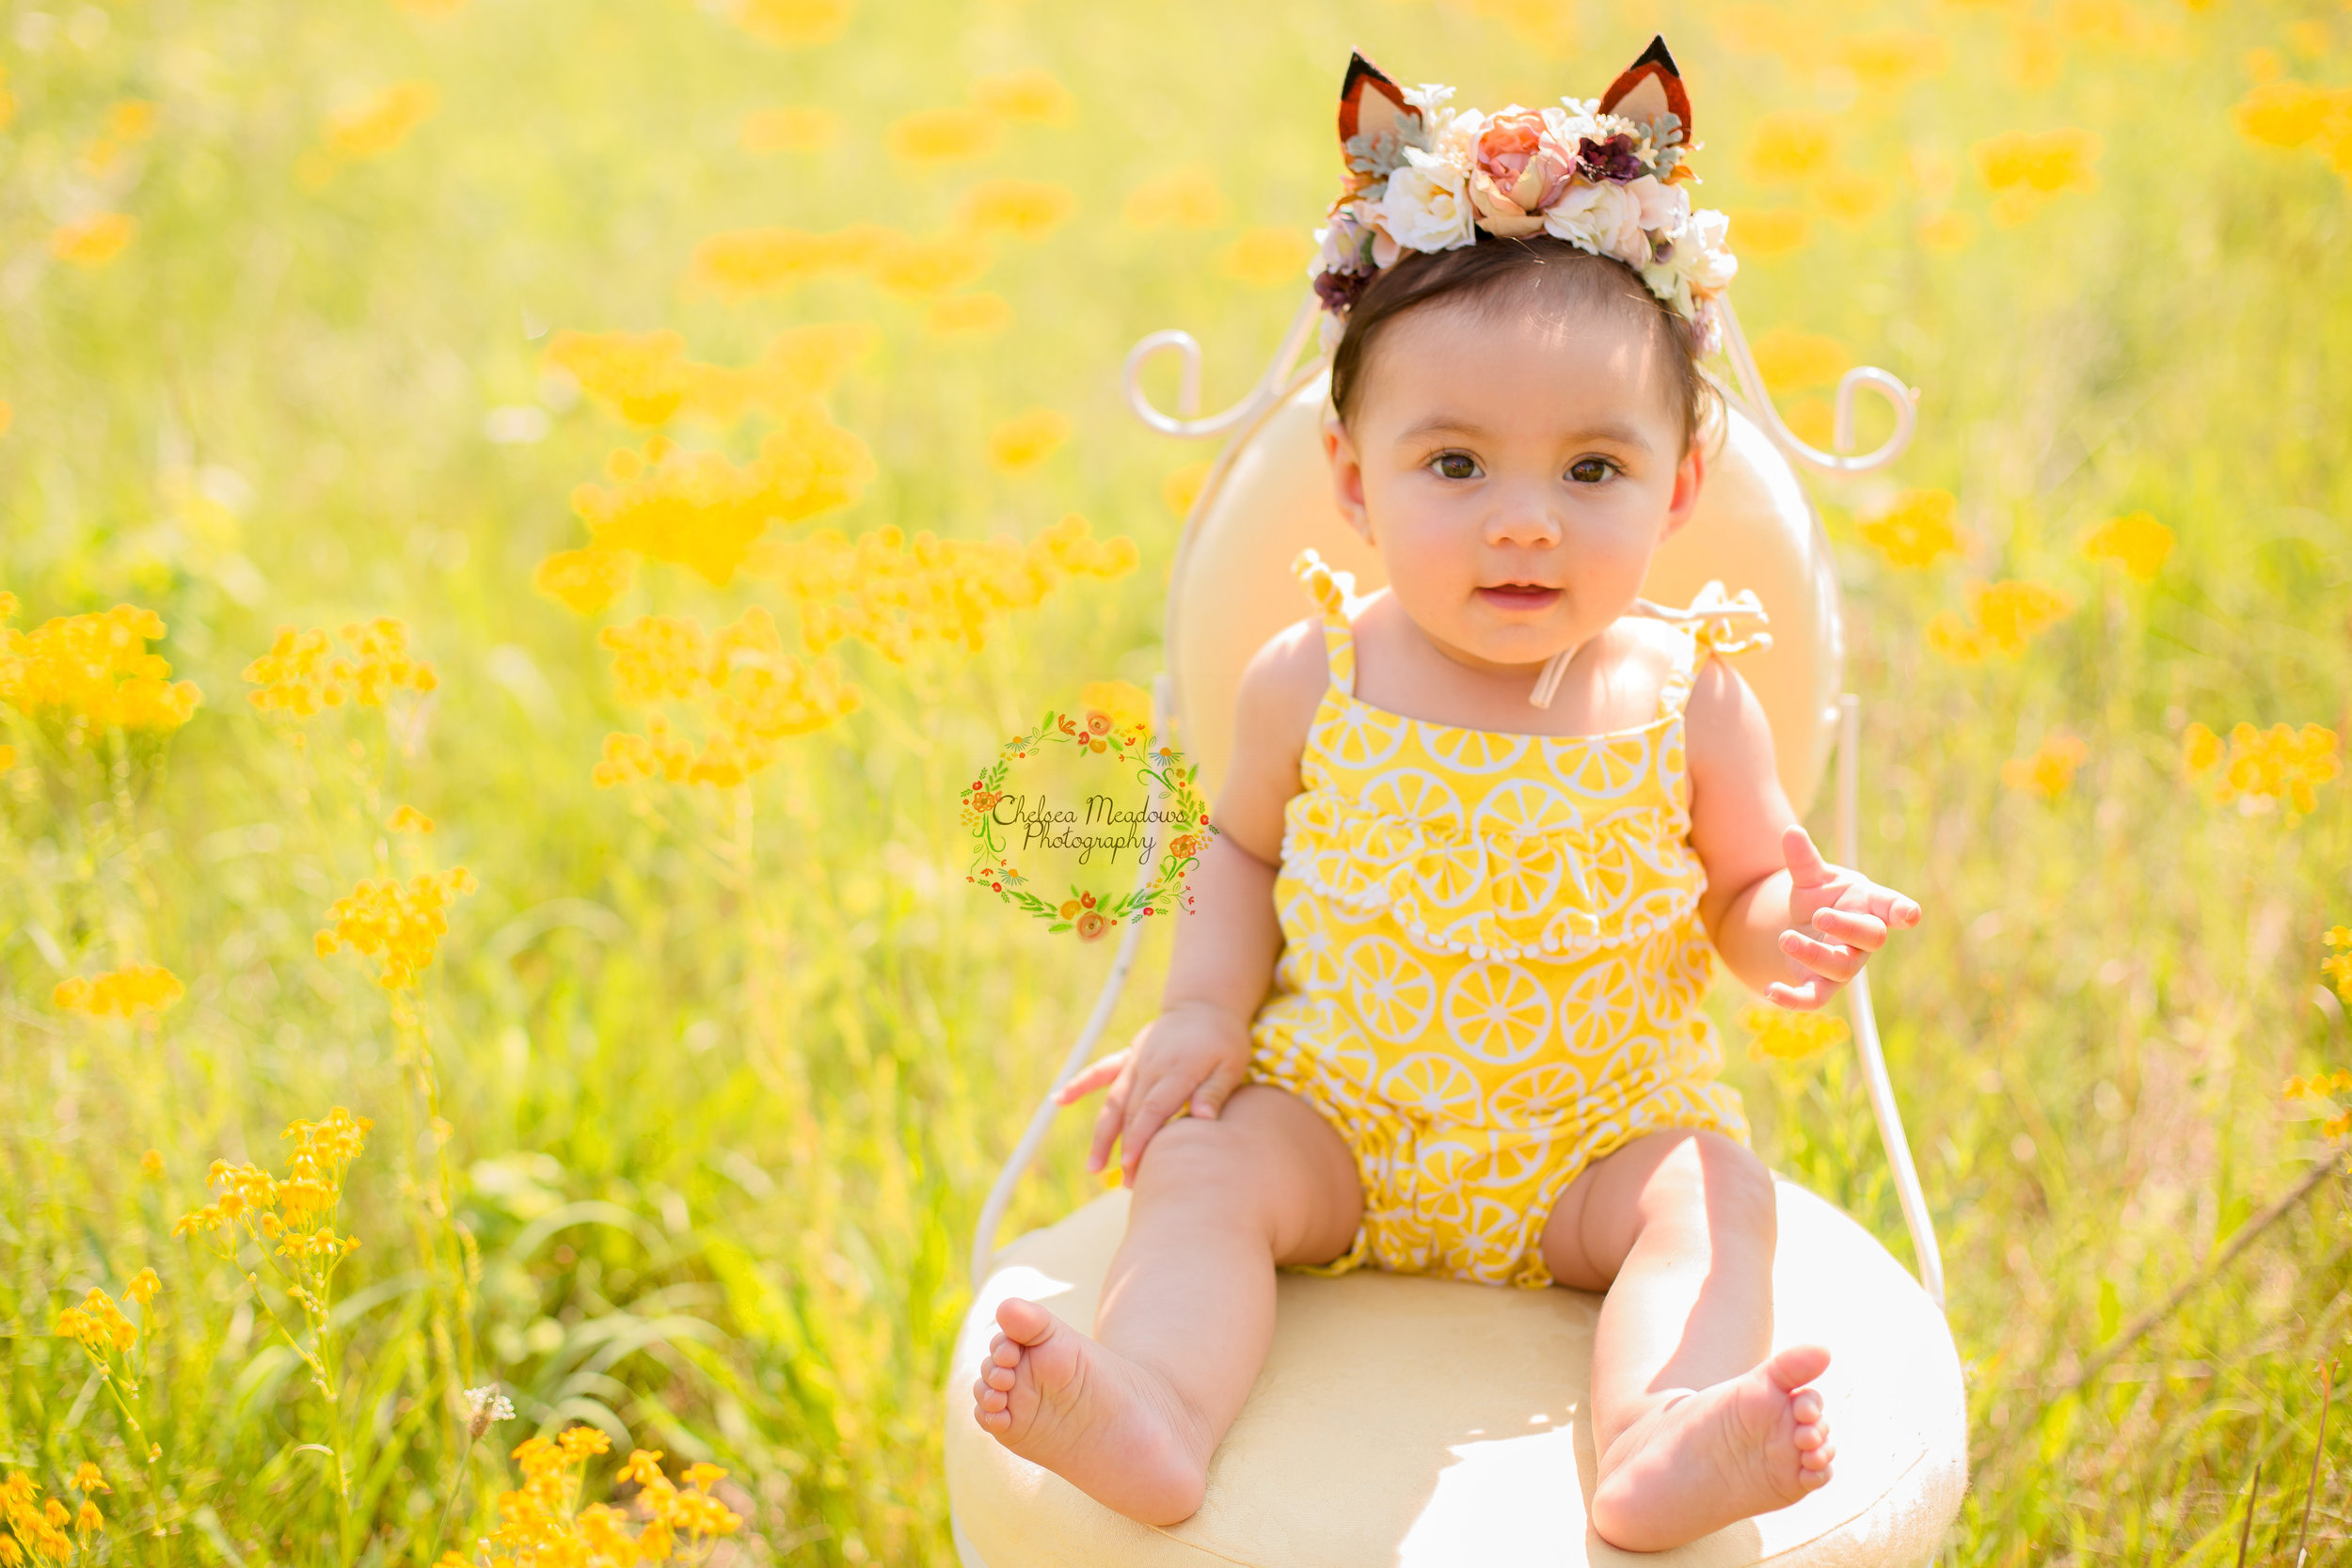 Camryn 6 Month Session - Nashville Family Photographer - Chelsea Meadows Photography (4)_edited-1.jpg